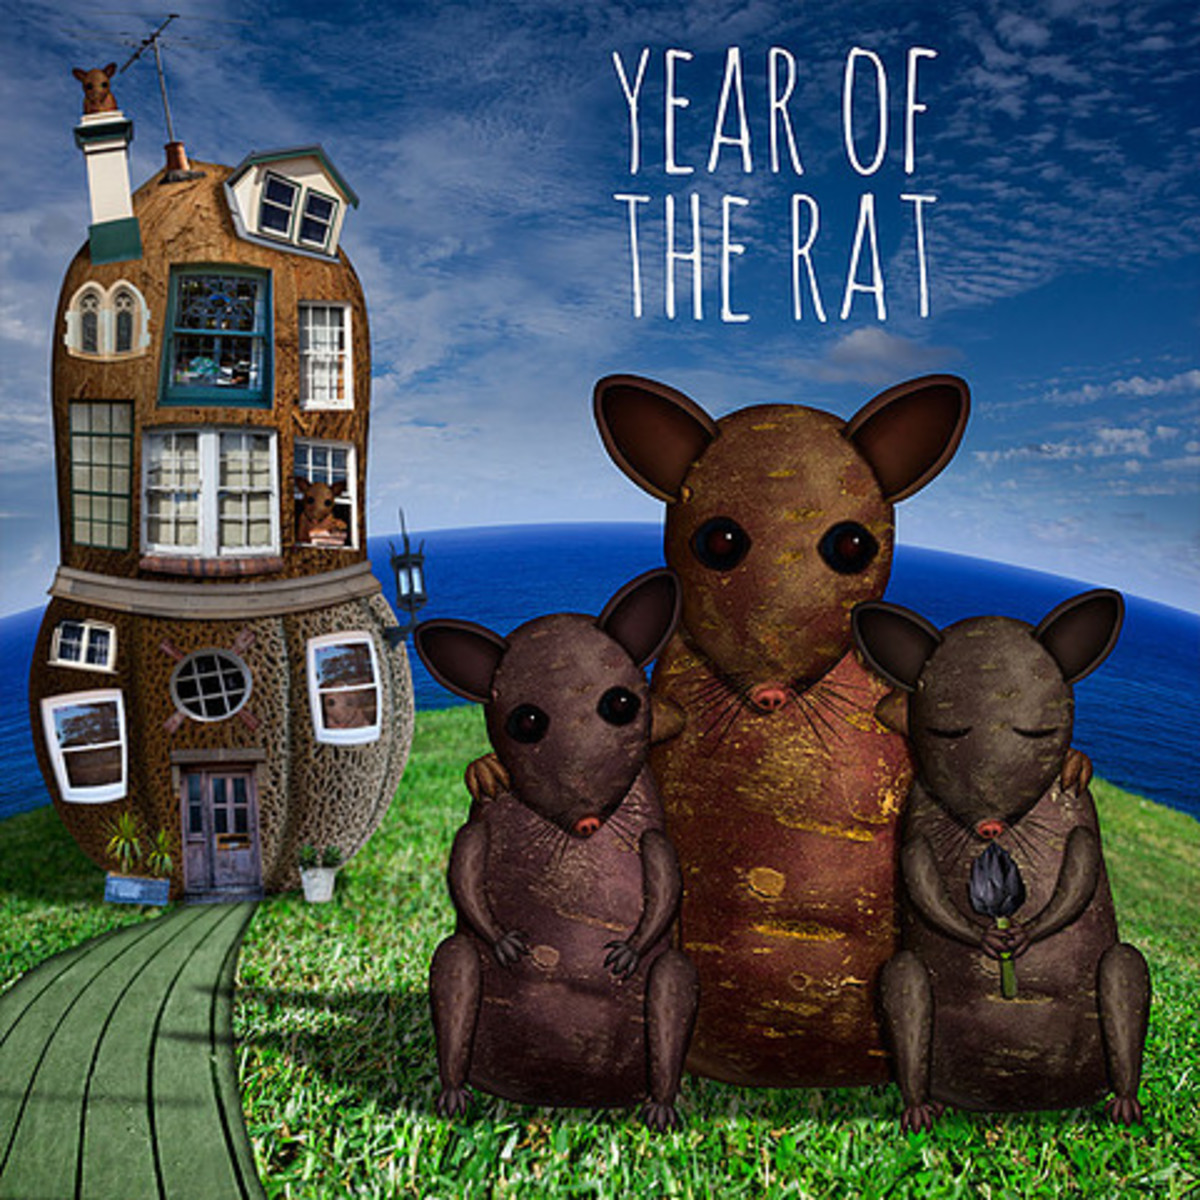 Carrie Webster - The Year of The Rat